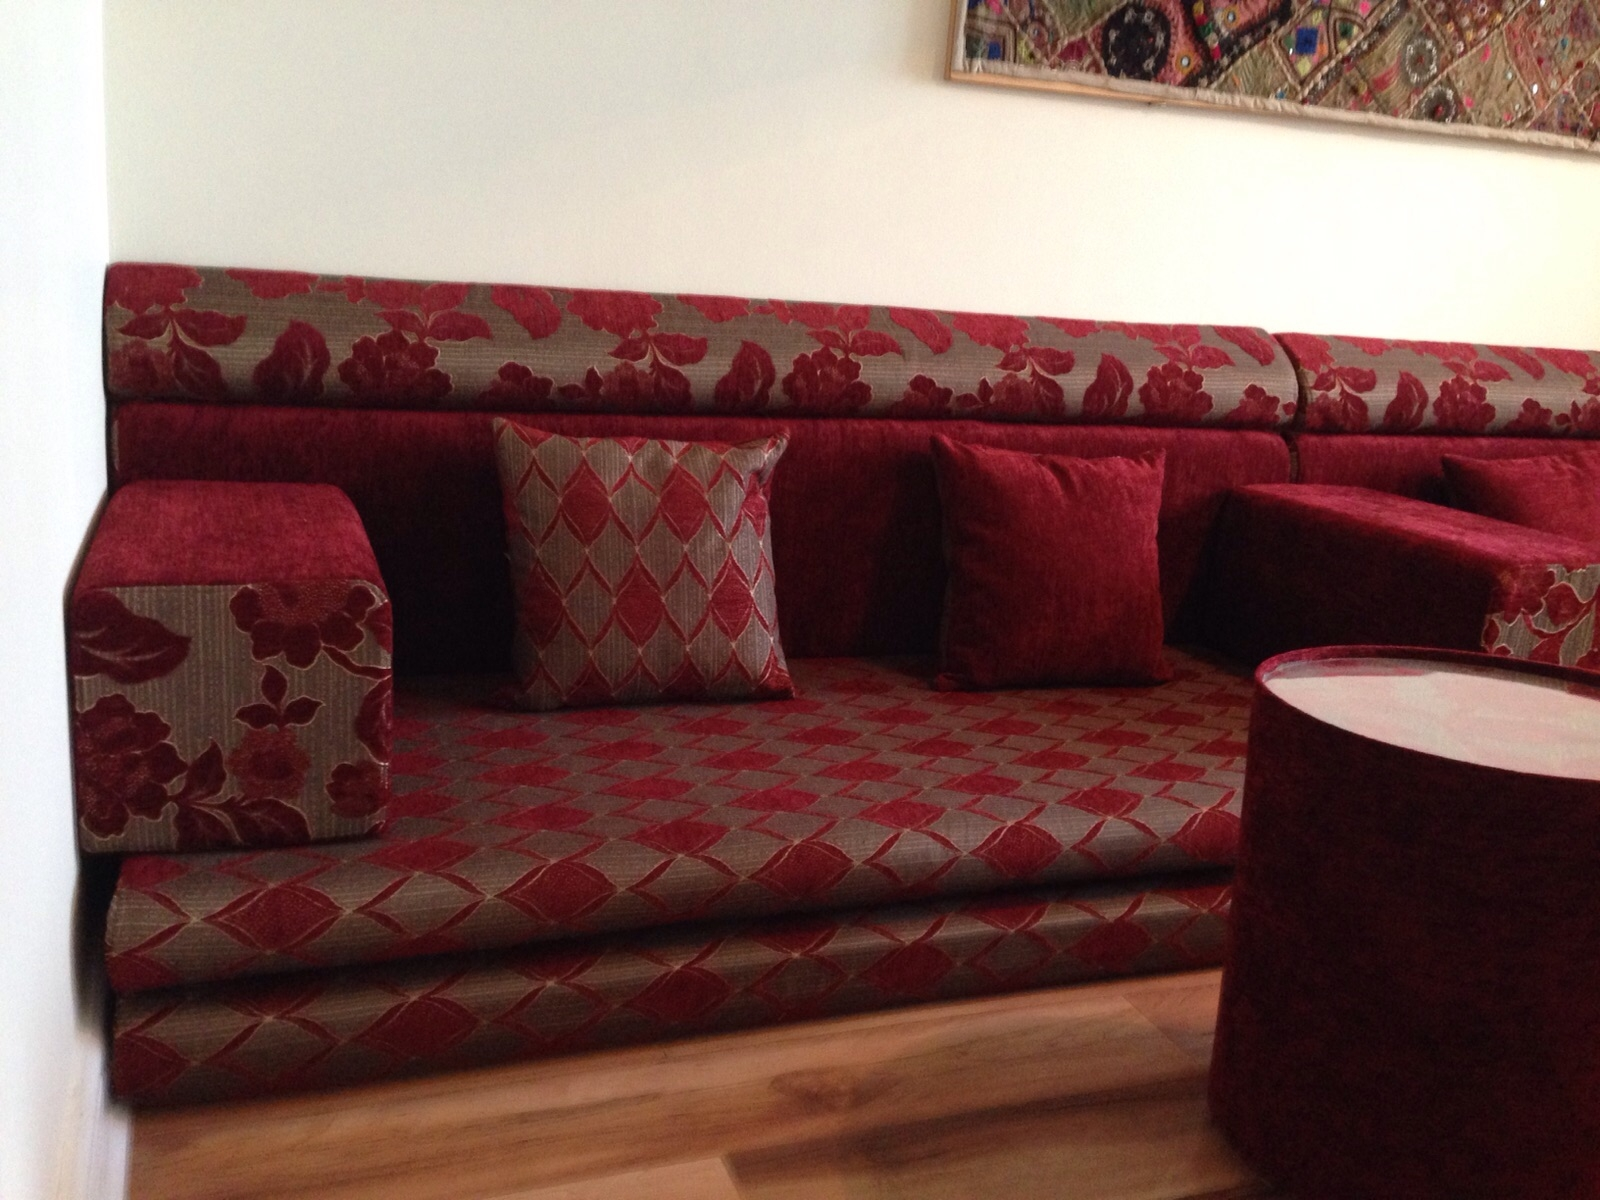 15 Photos Moroccan Floor Seating Cushions Sofa Ideas